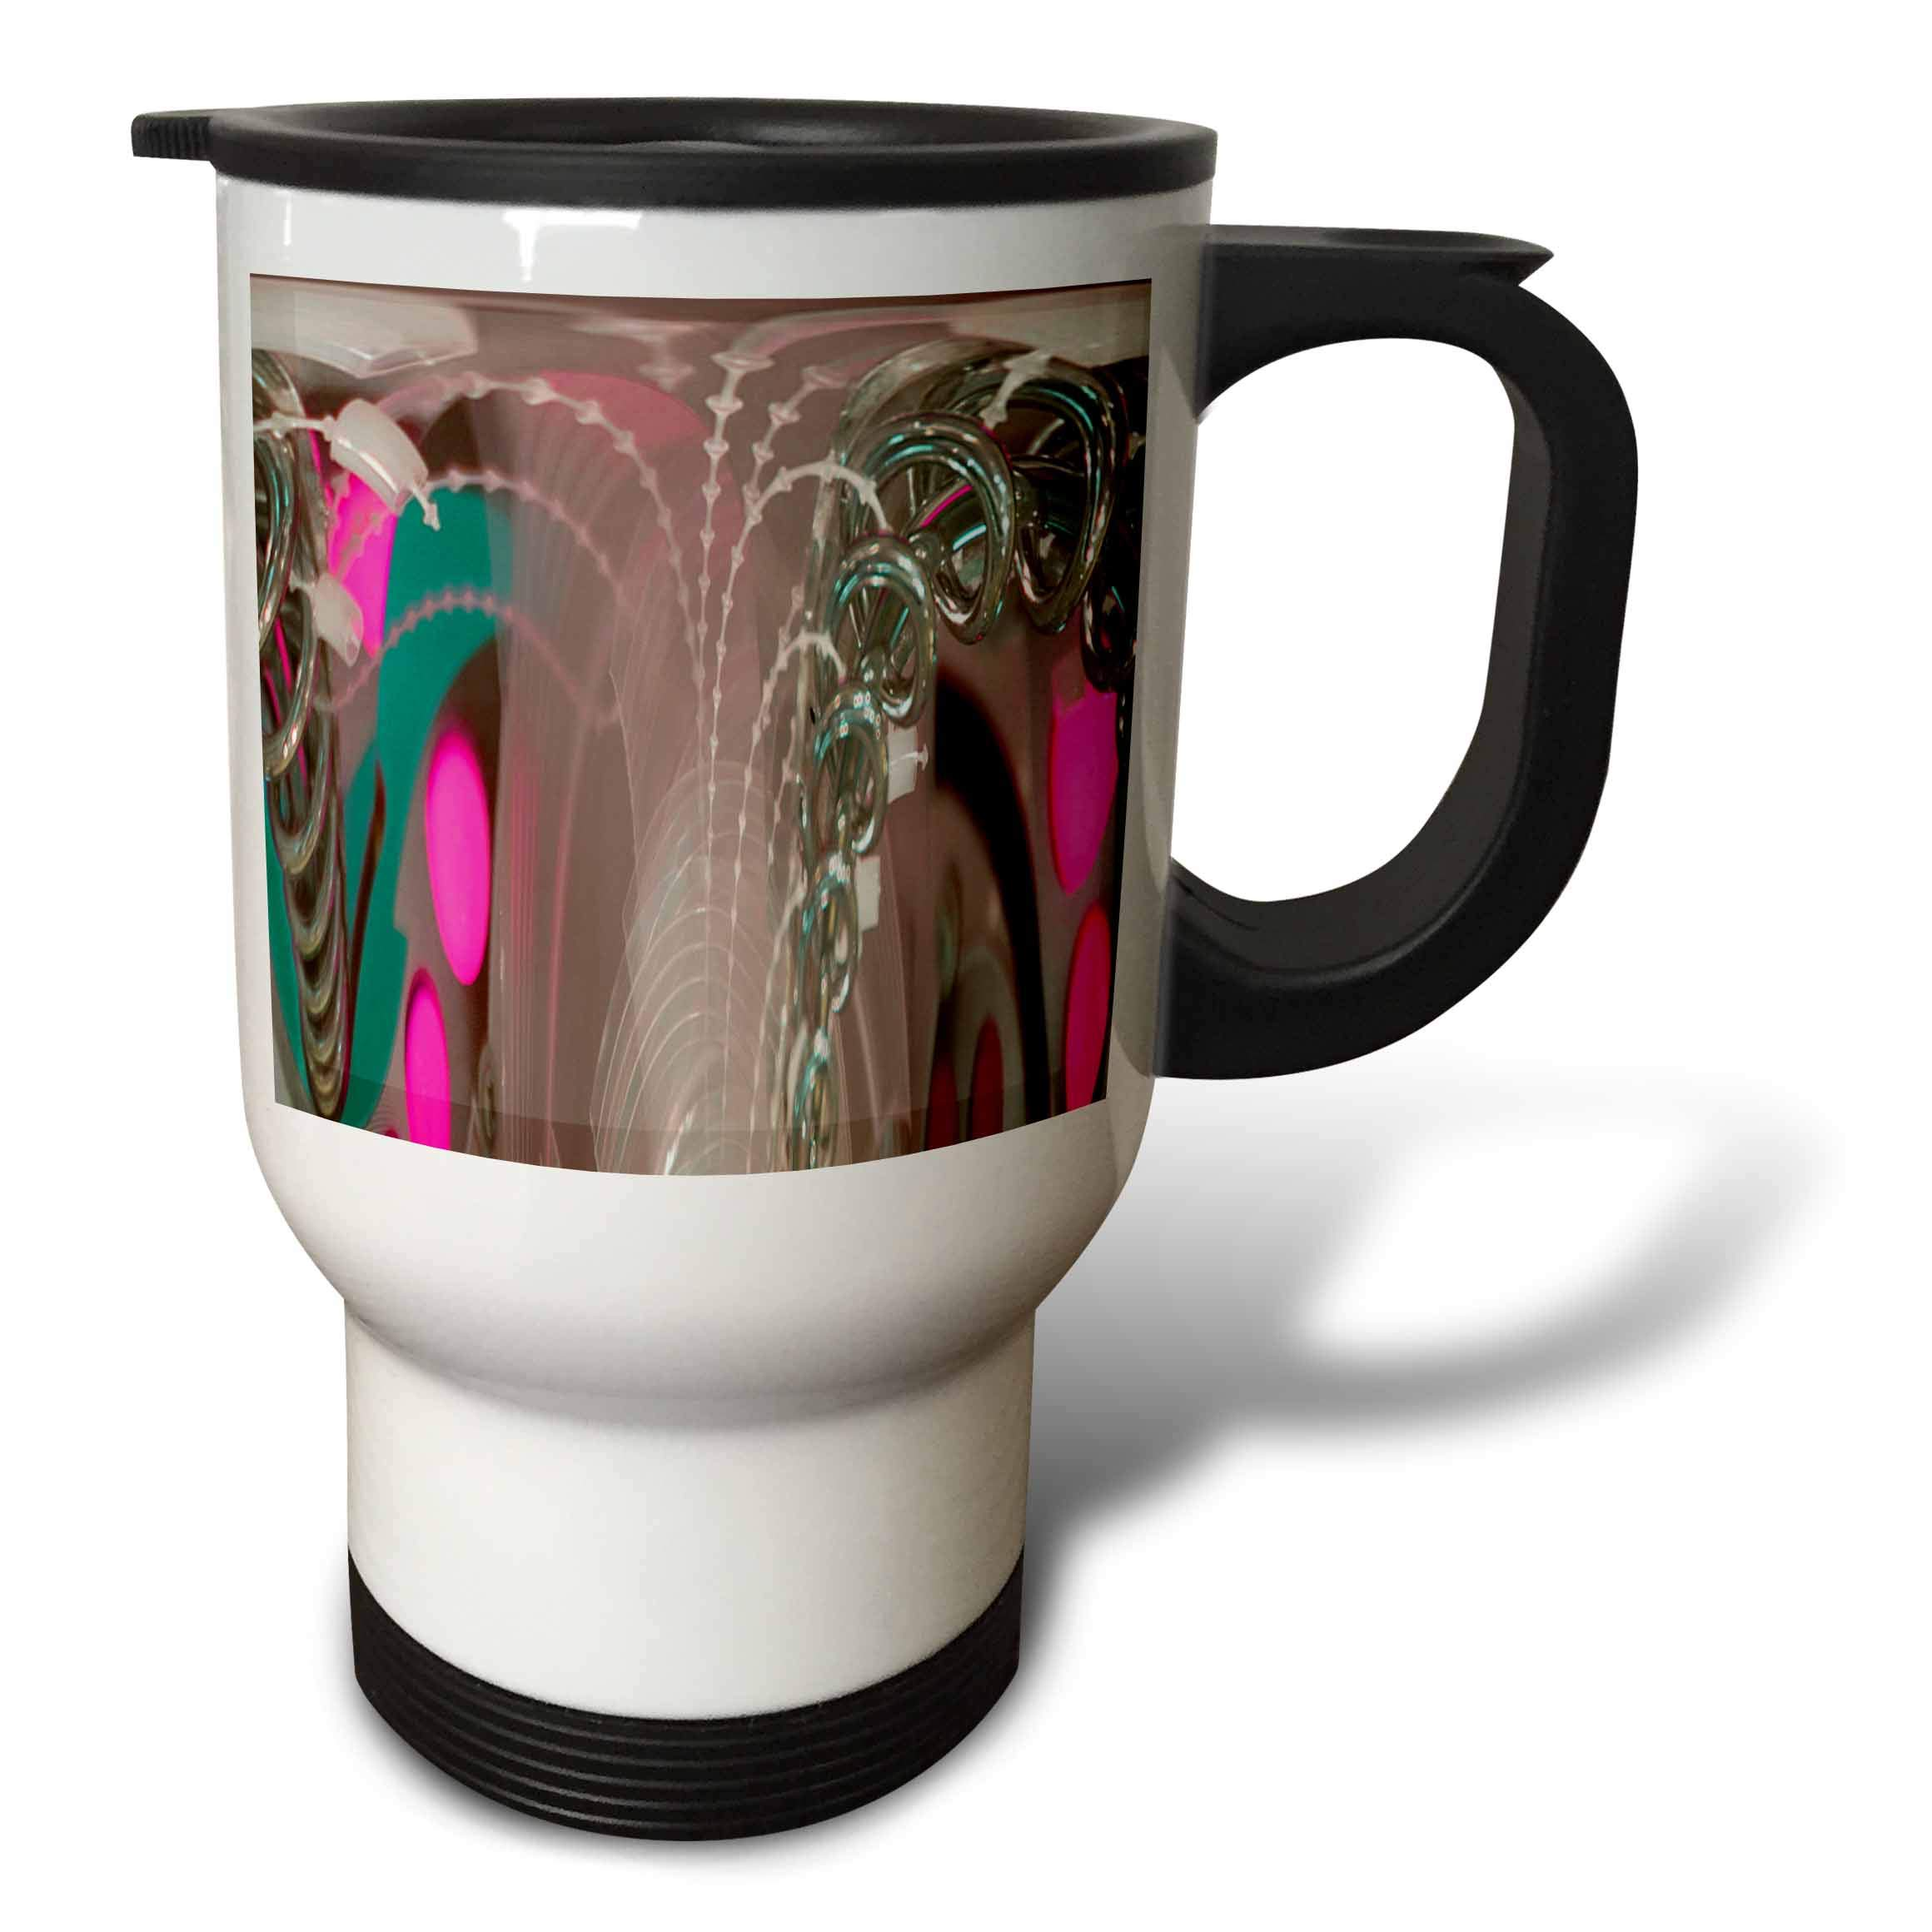 3dRose Jos Fauxtographee- Polar to Rectangular Metal - A metal game at a restaurant with pink and green hues made modern - 14oz Stainless Steel Travel Mug (tm_288895_1)